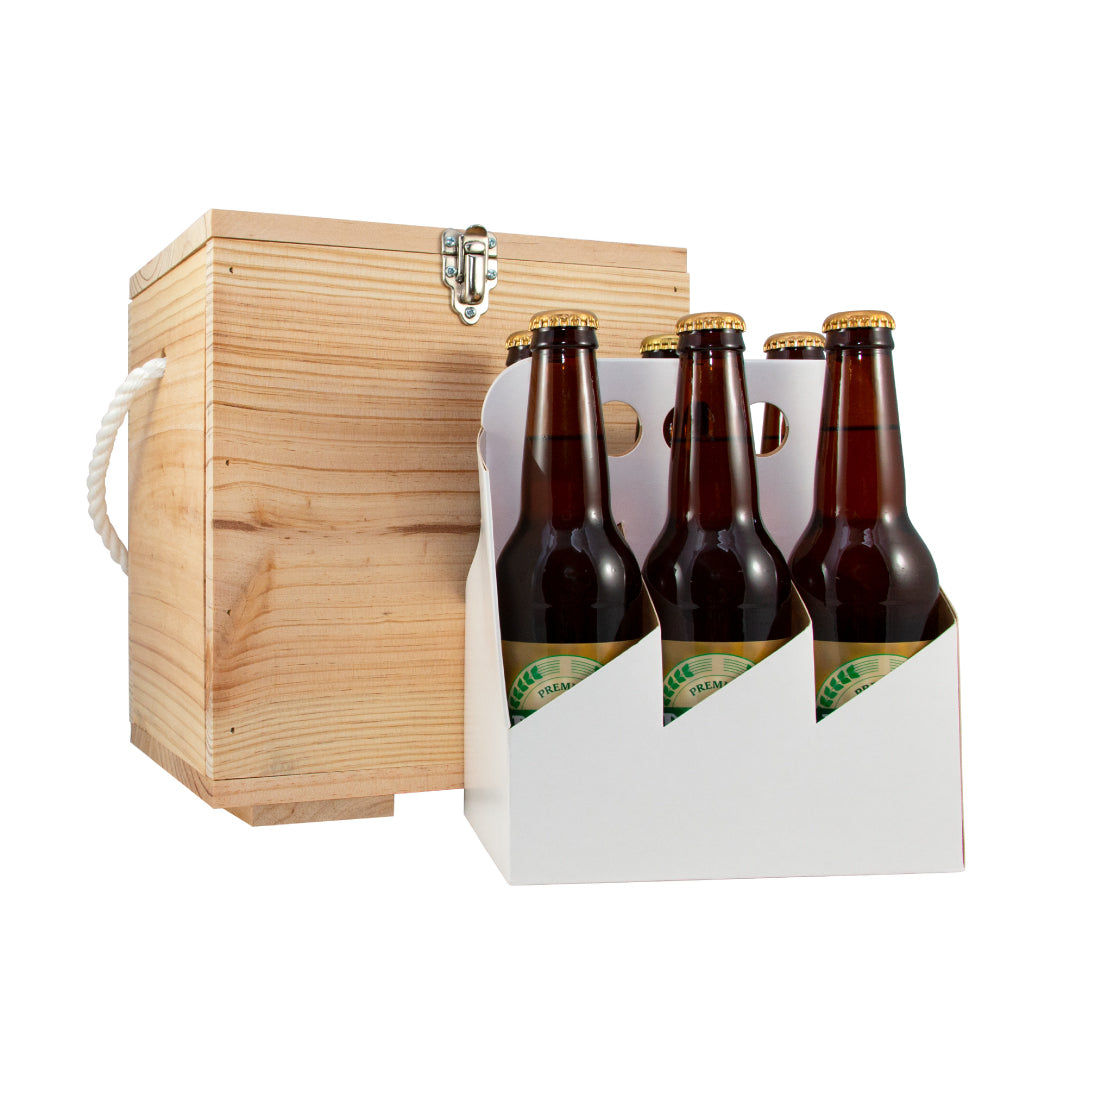 Craft Pale Ale 4.5% - Wooden Beer Box - 6 pack